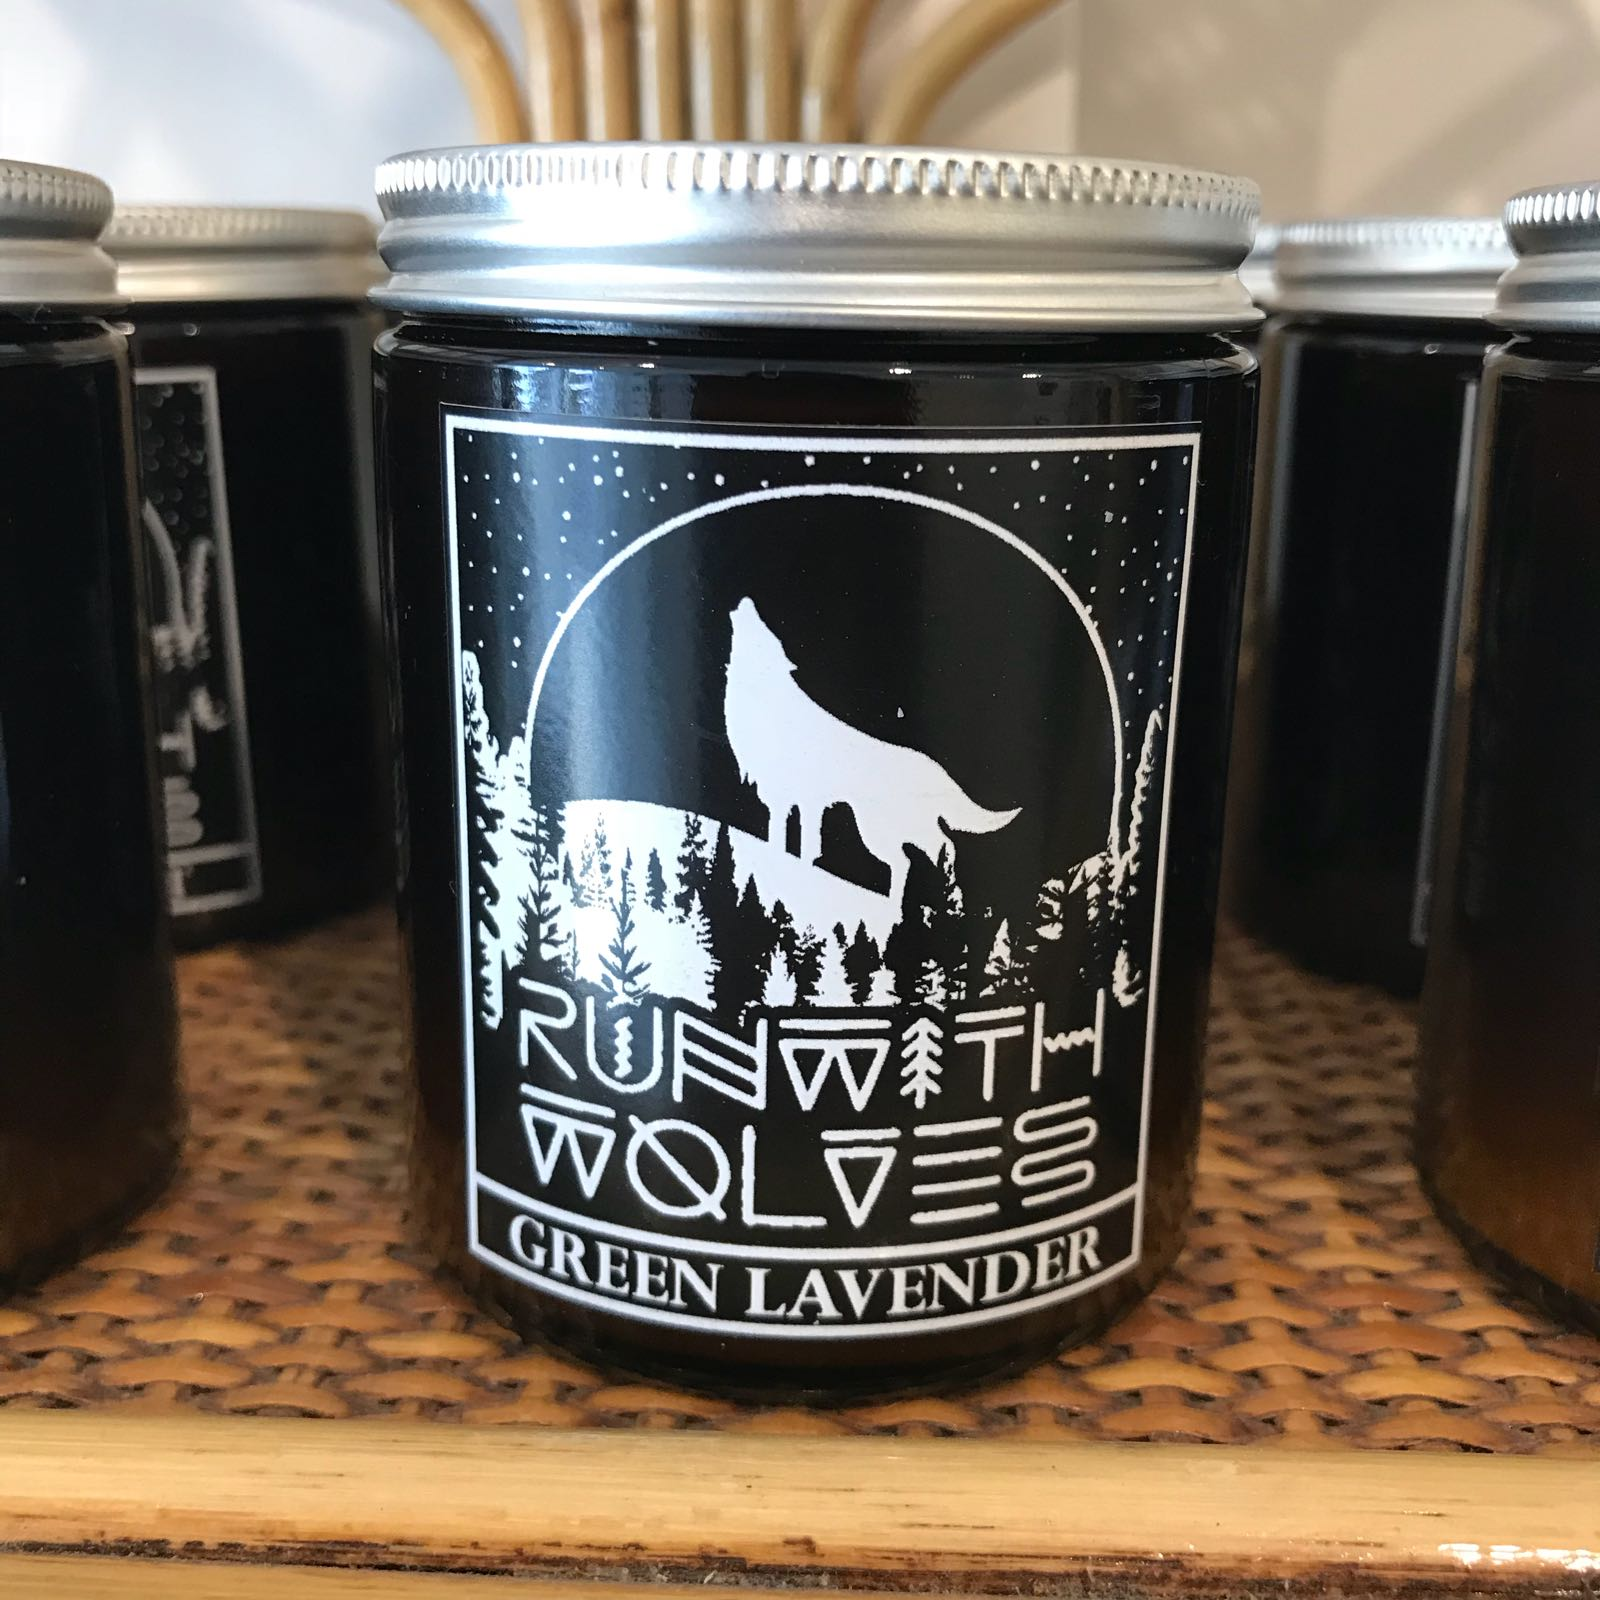 Green Lavender Soy Wax Candle